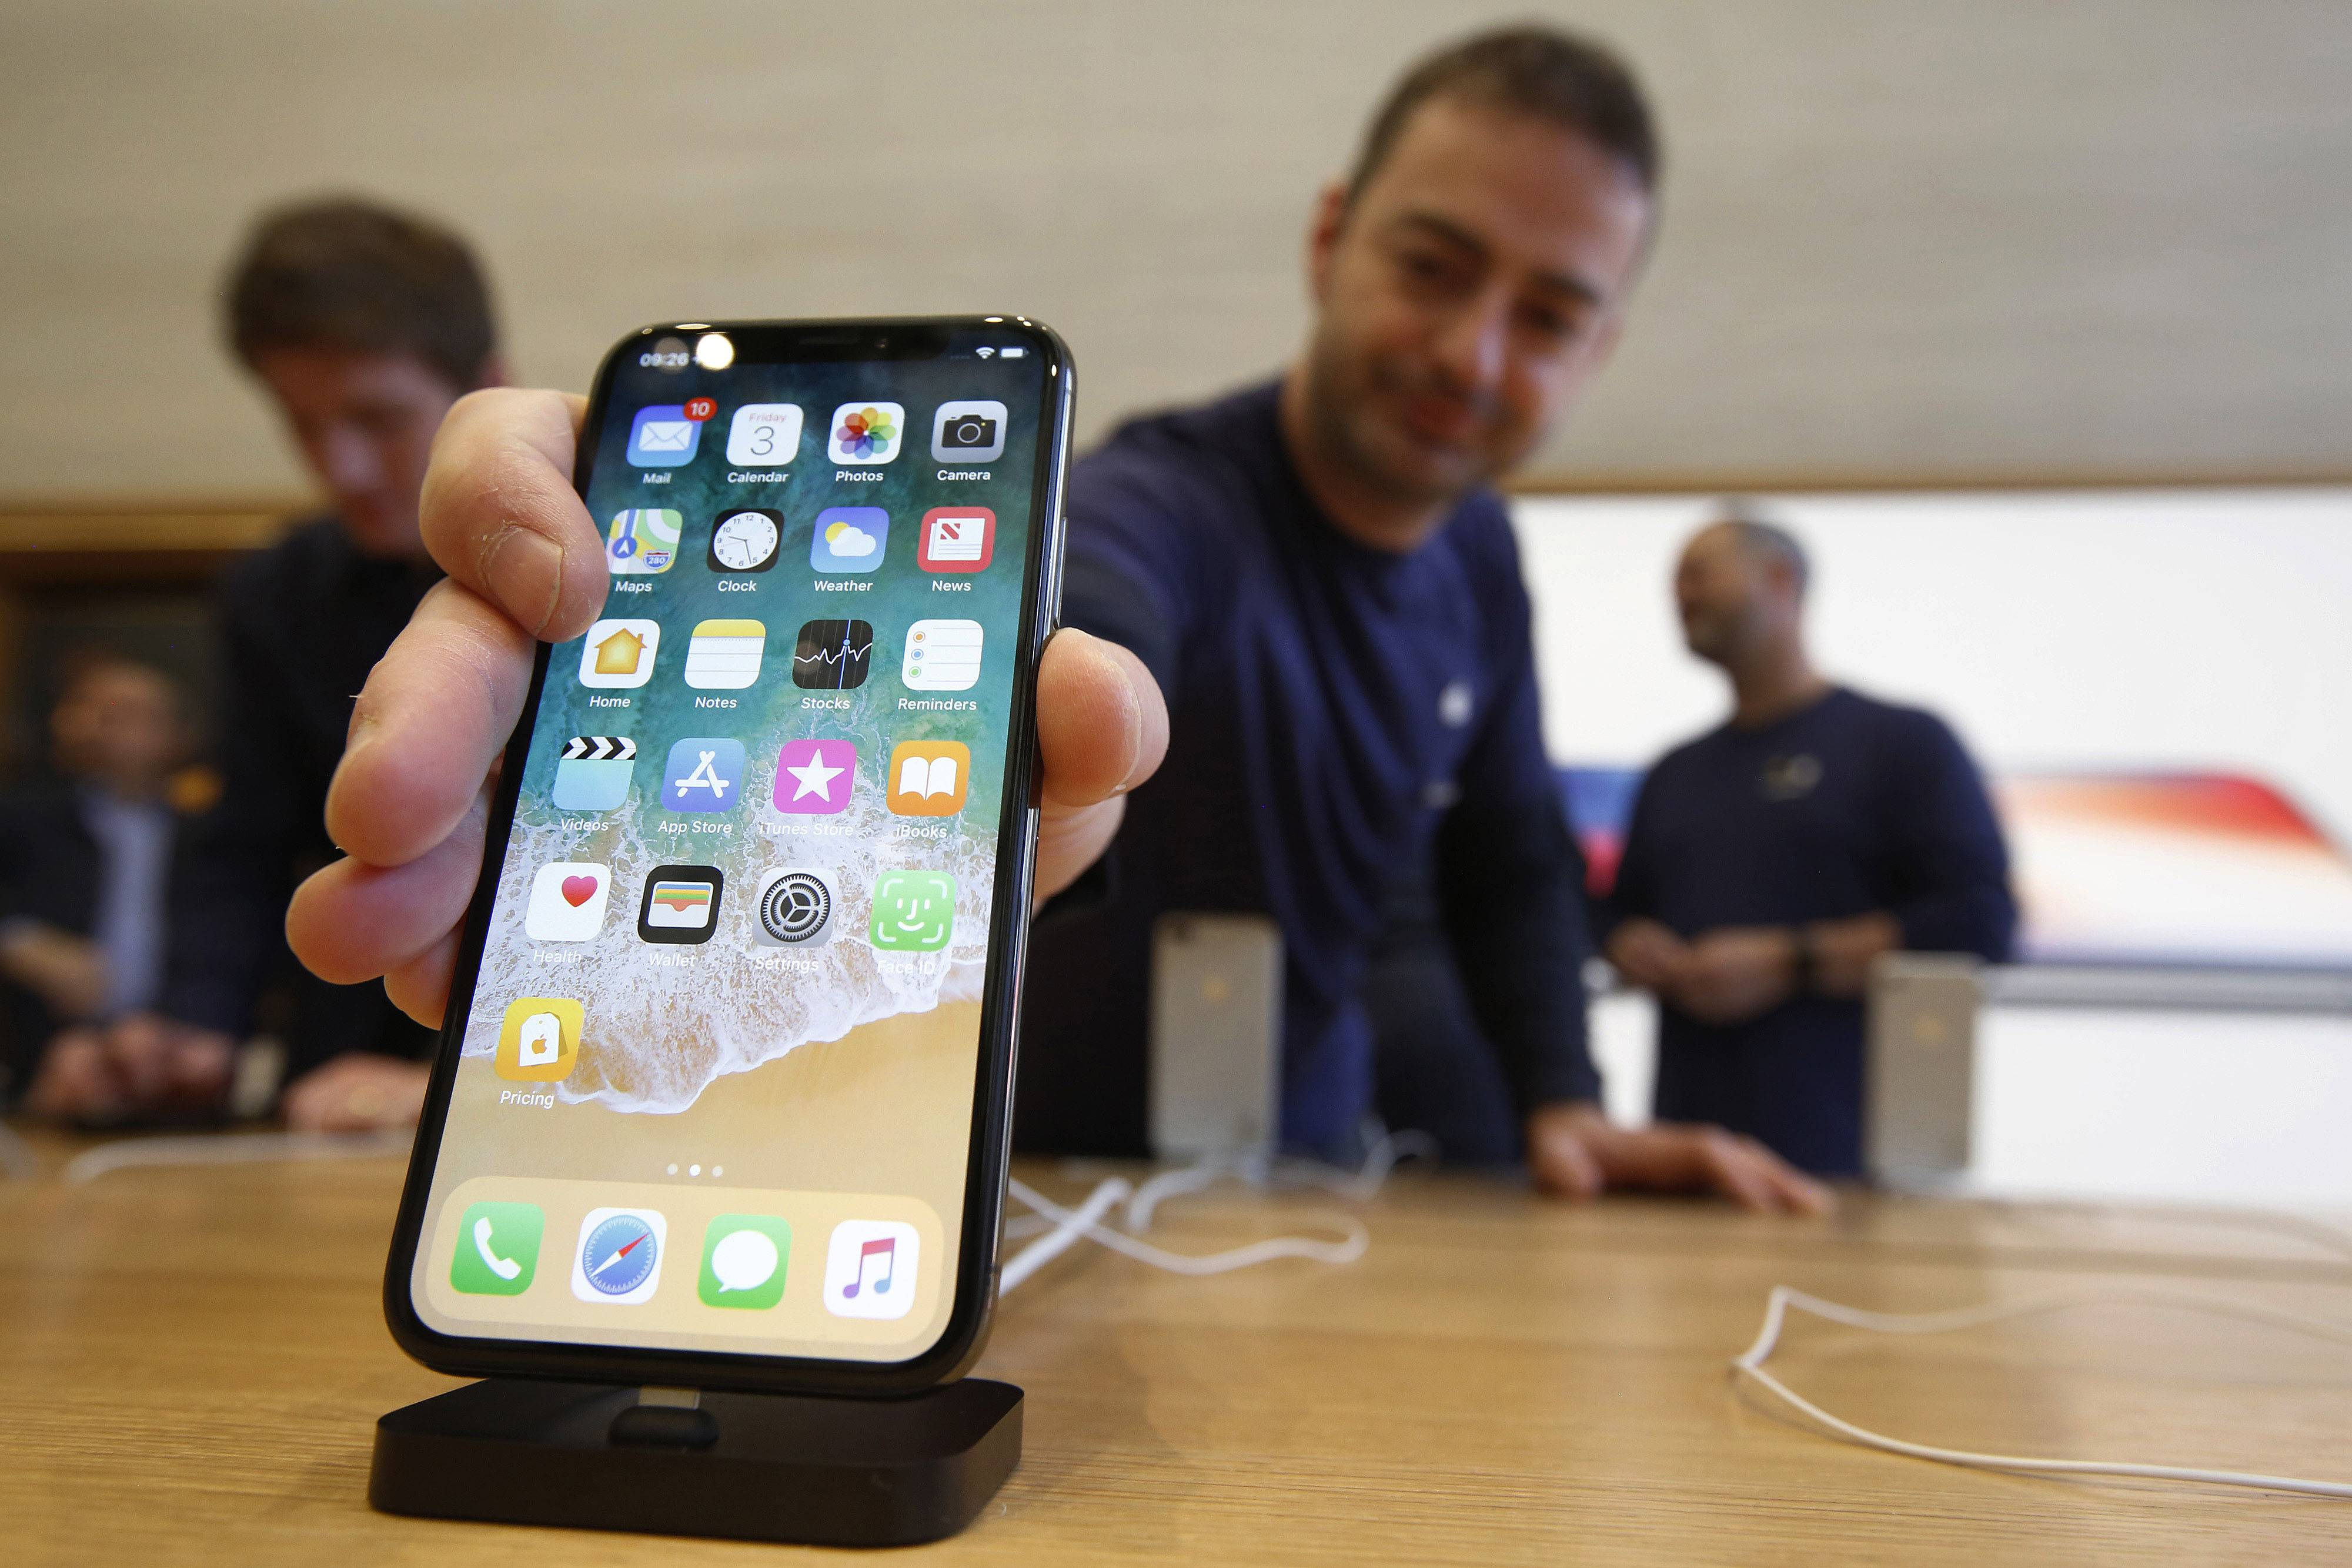 Apple said all Mac computers and iOS devices, like iPhones and iPads, are affected by chip security flaws unearthed this week, but the company stressed there are no known exploits impacting users.